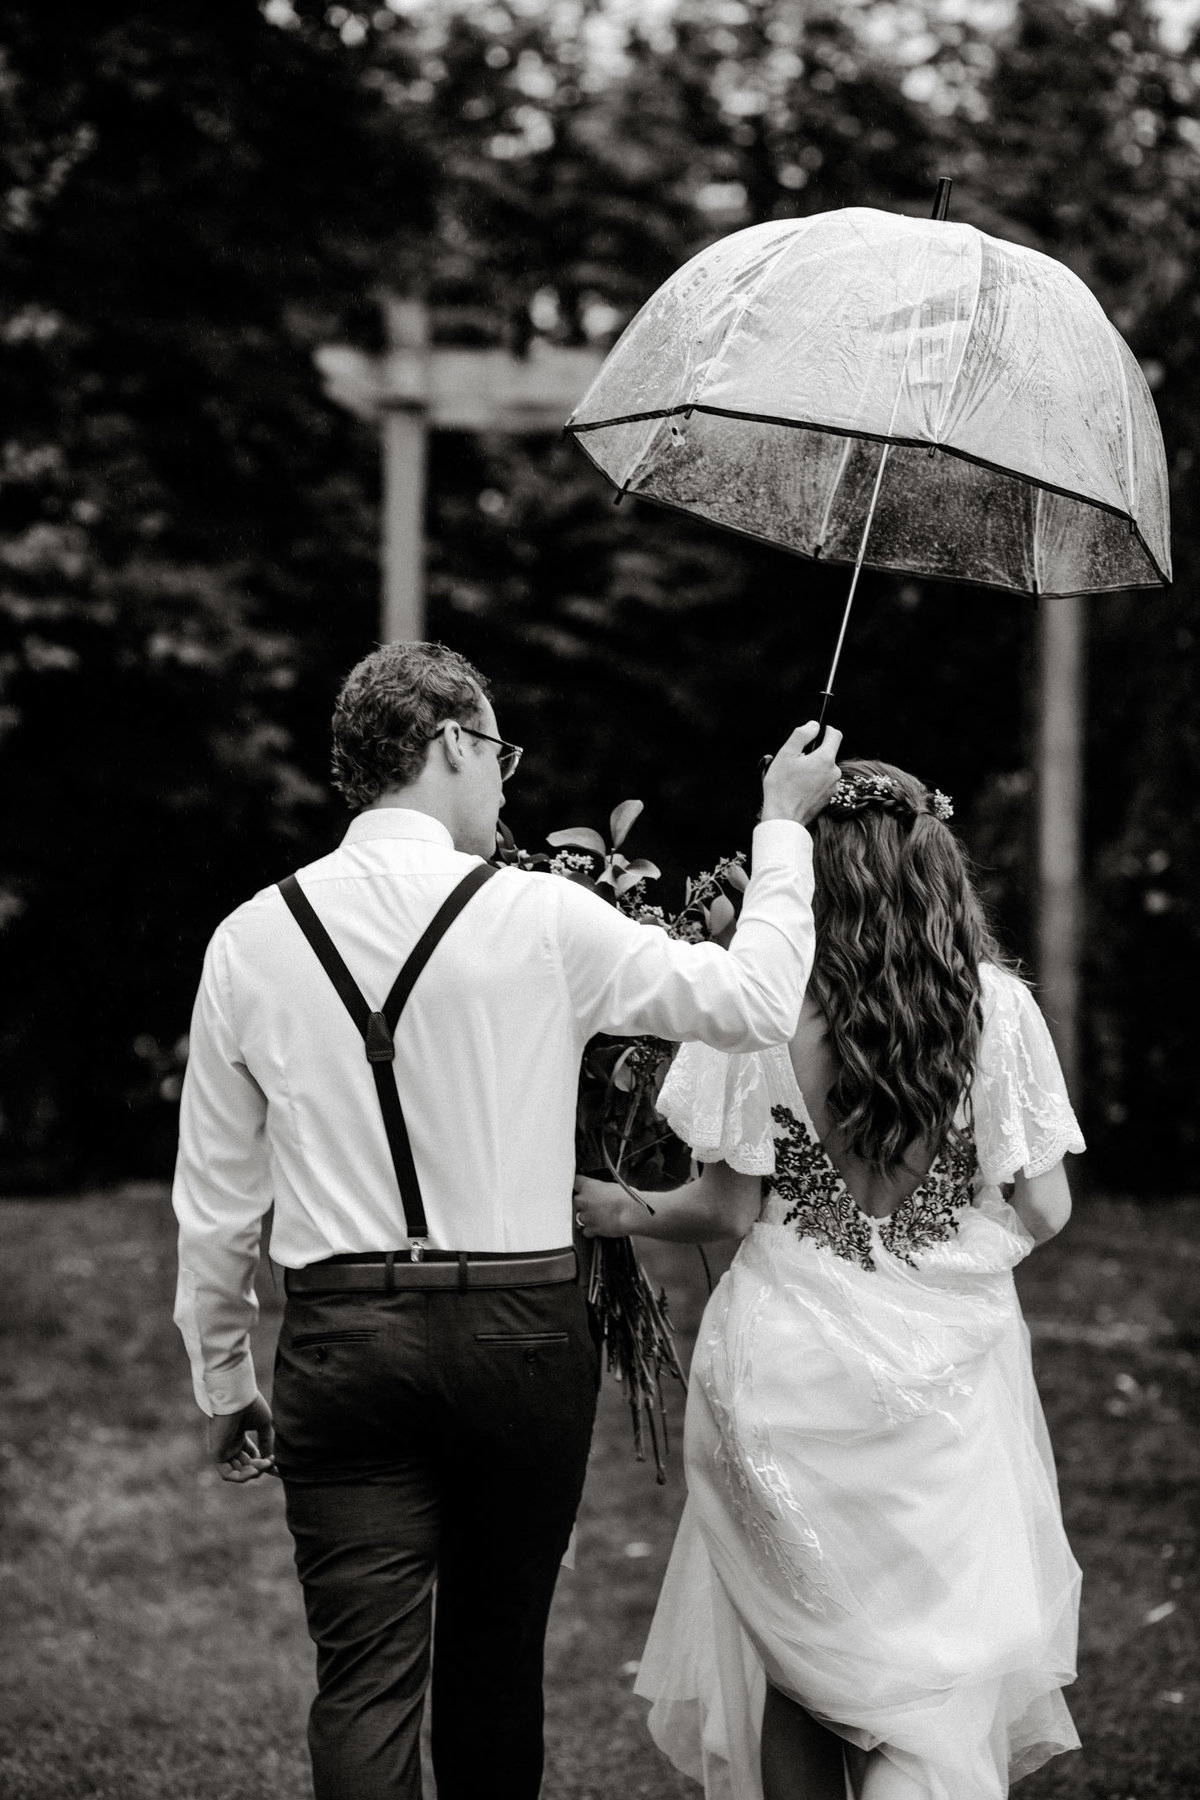 danika lee photography_kelowna vancouver okanagan summerland lake country wedding and elopement photographer candid film documentary colourful candid romantic dark and moody-351